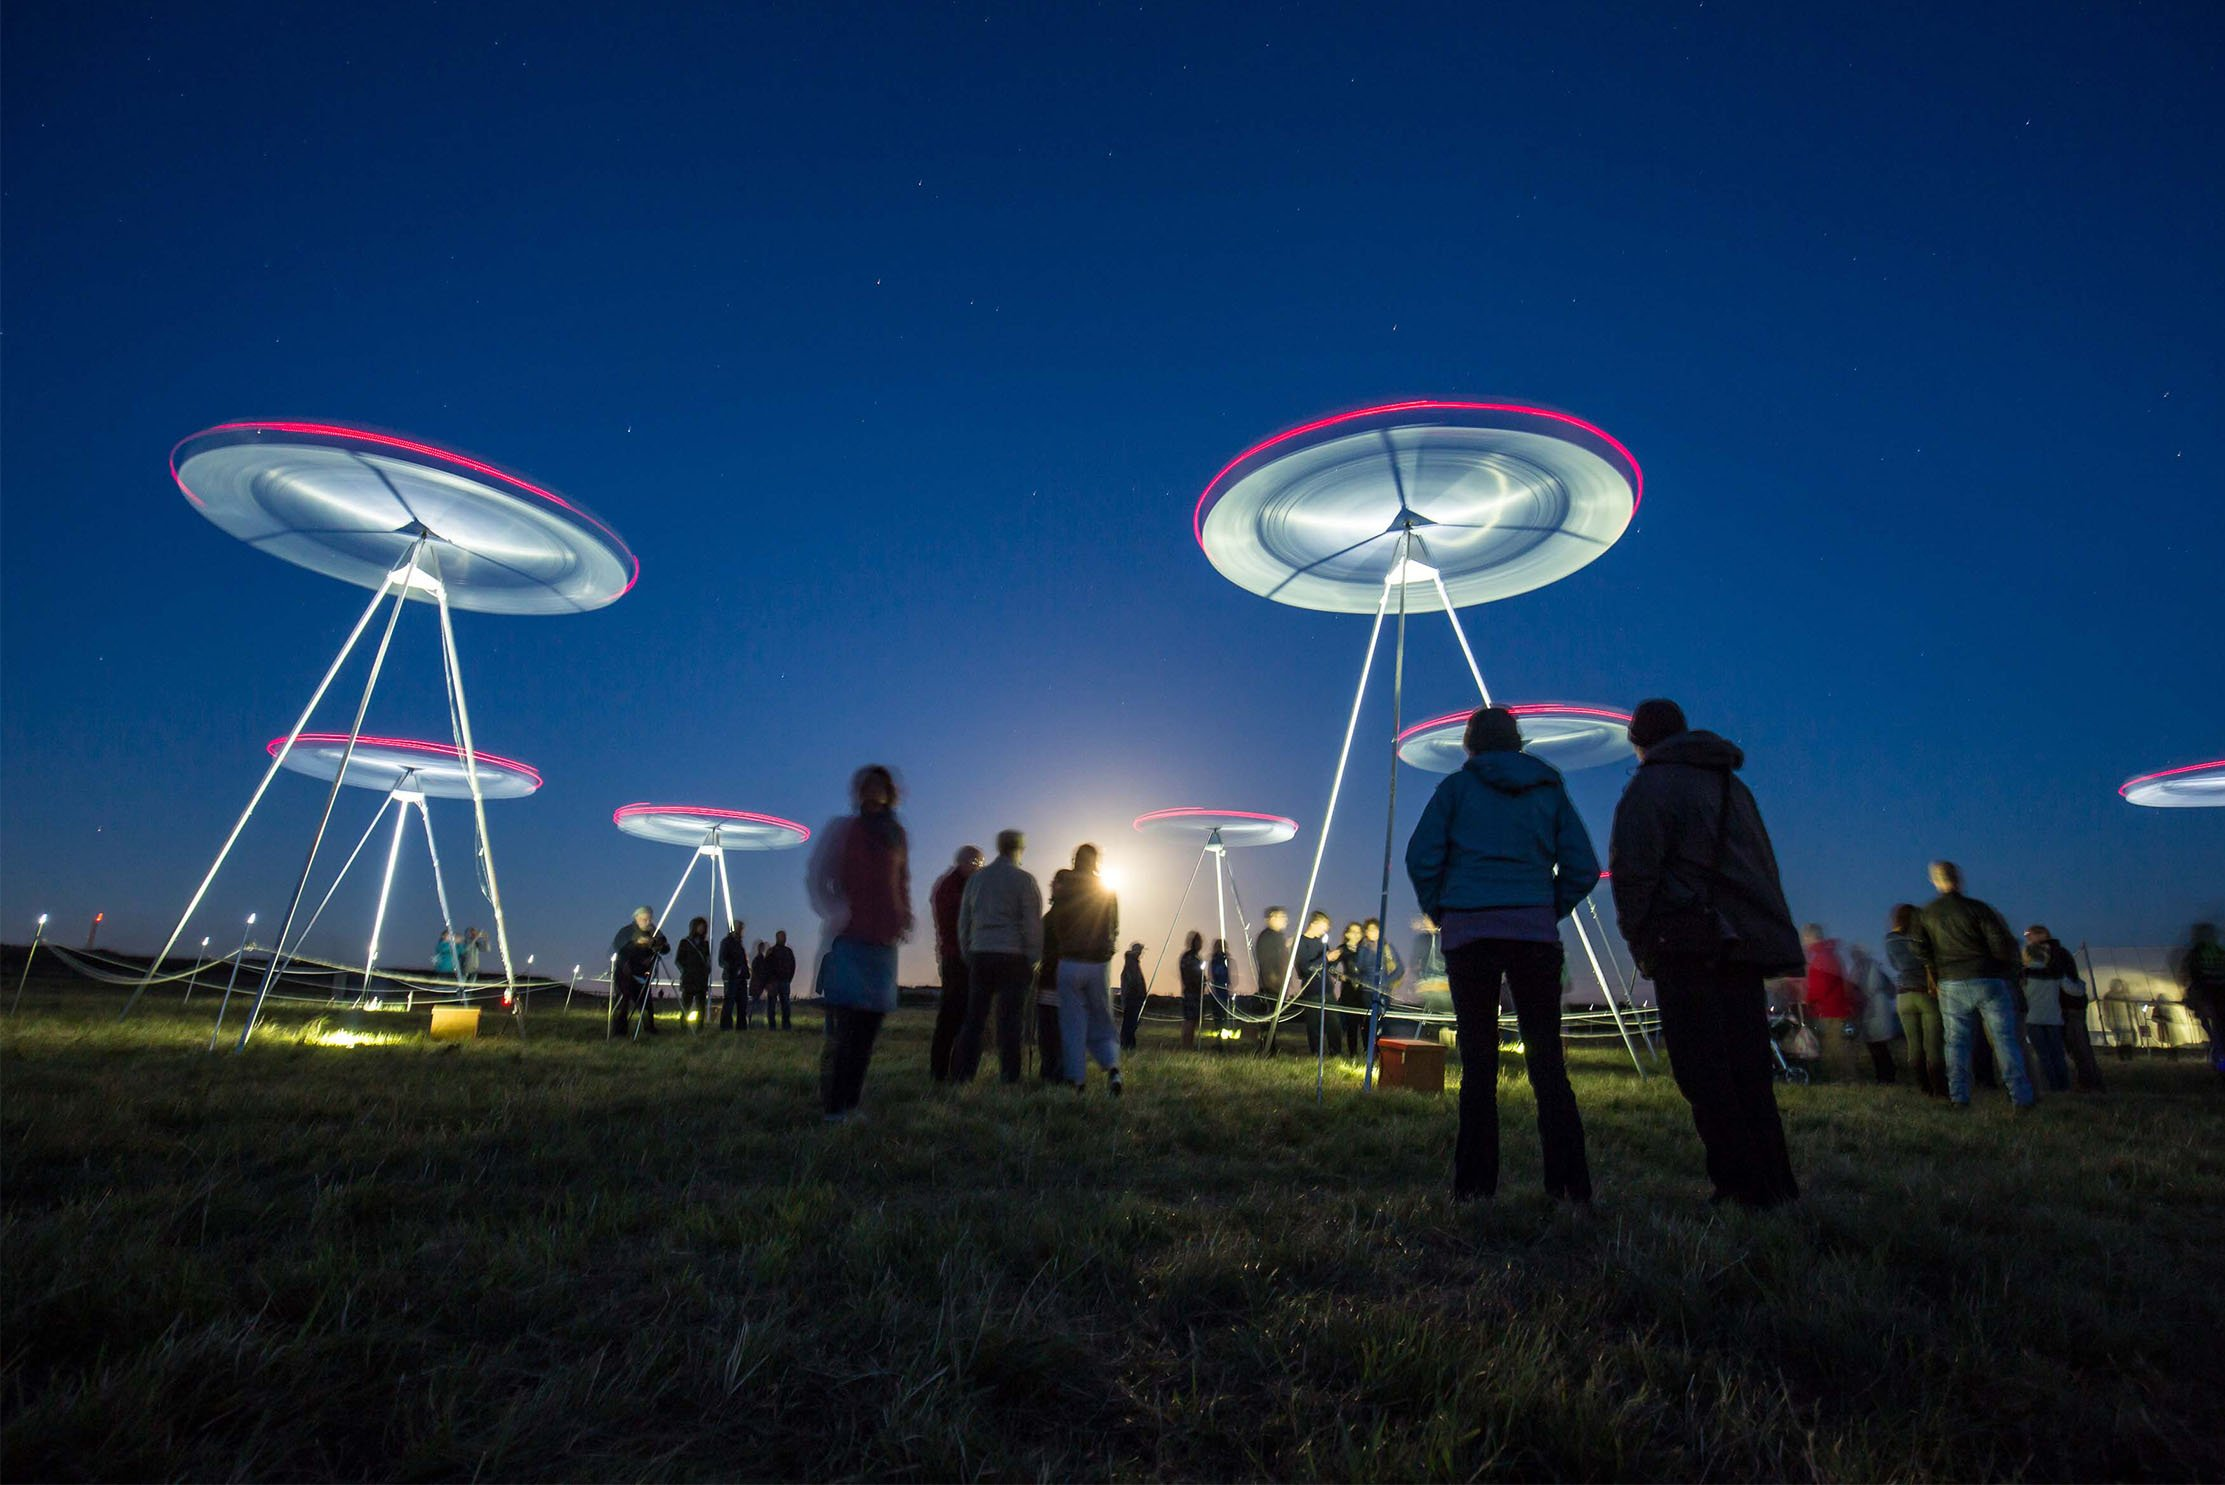 Brighton Festival has announced its programme for 2021, as it brings 95 art events to venues and outdoor spaces across Sussex